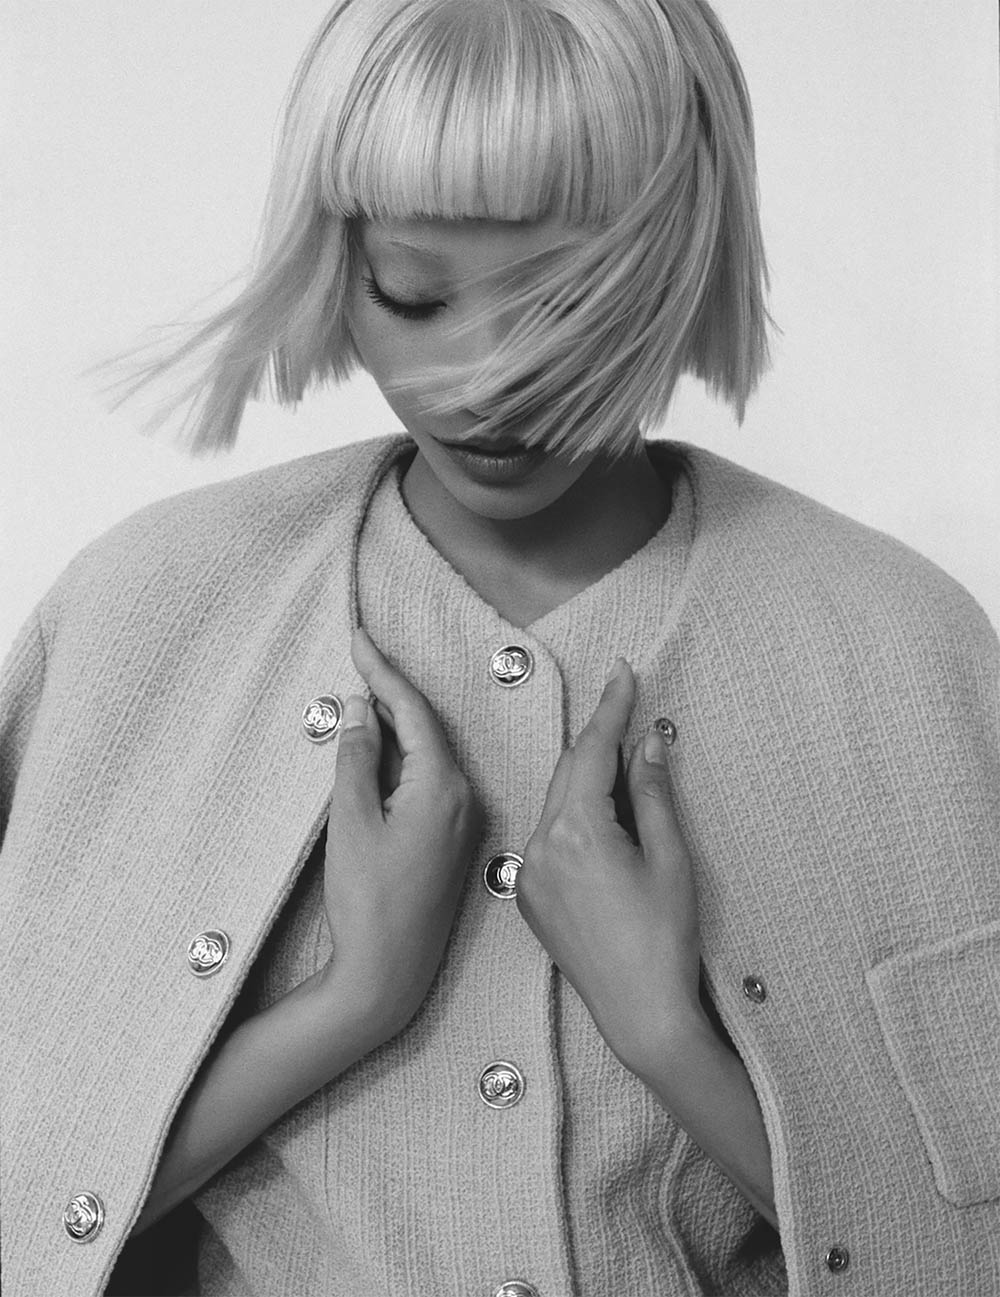 Soo Joo Park covers The WOW Magazine Issue 3 2020 by Peter Ash Lee